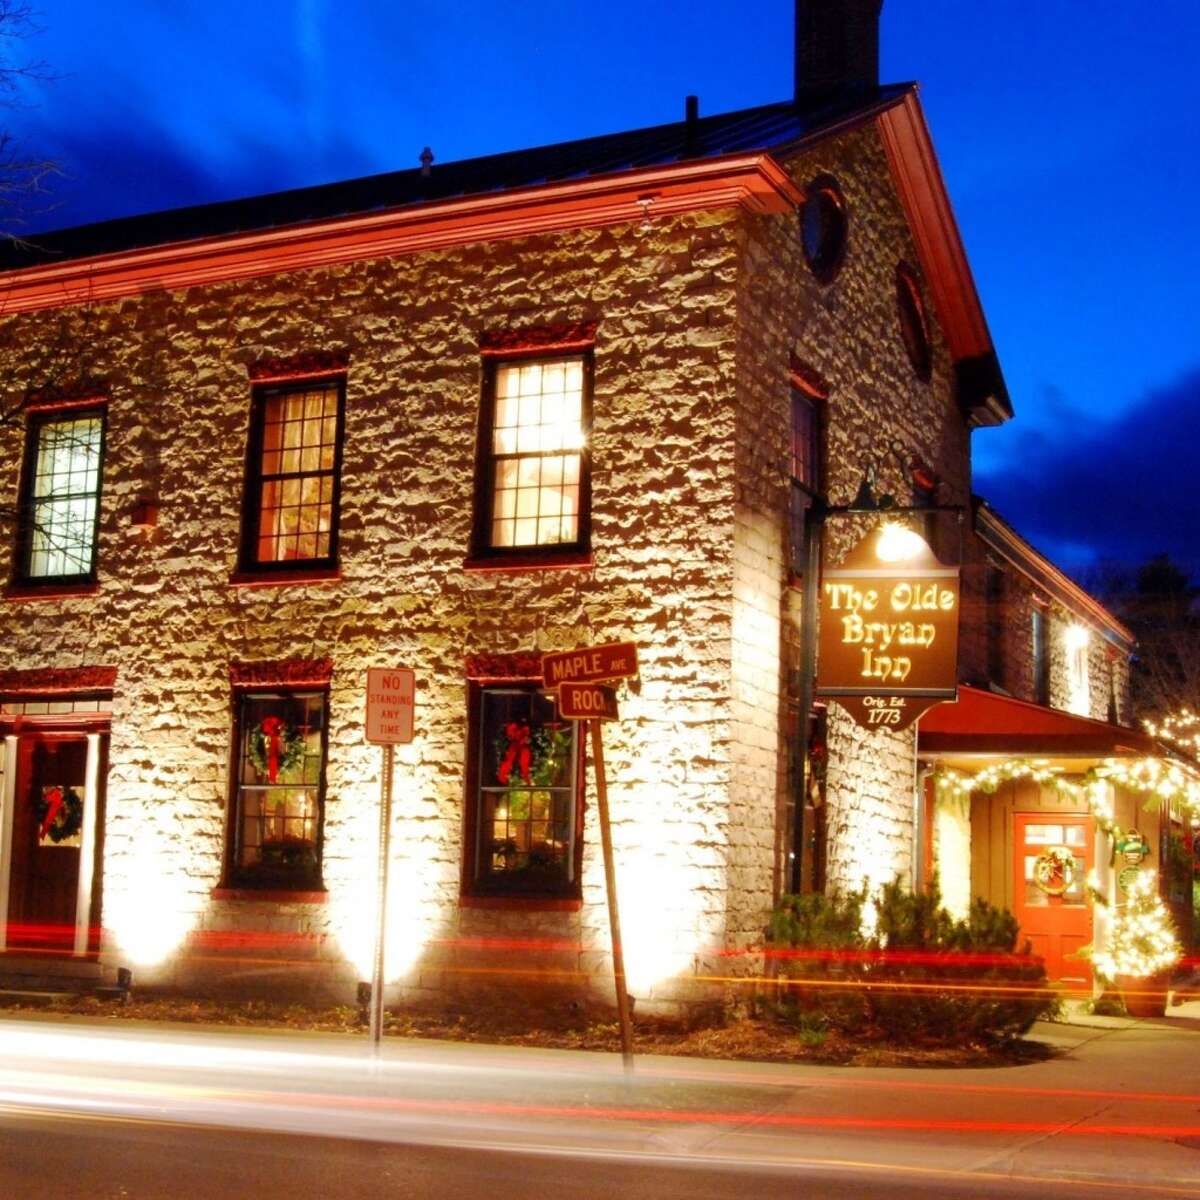 The Olde Bryan Inn in Saratoga Springs closed it's dining room